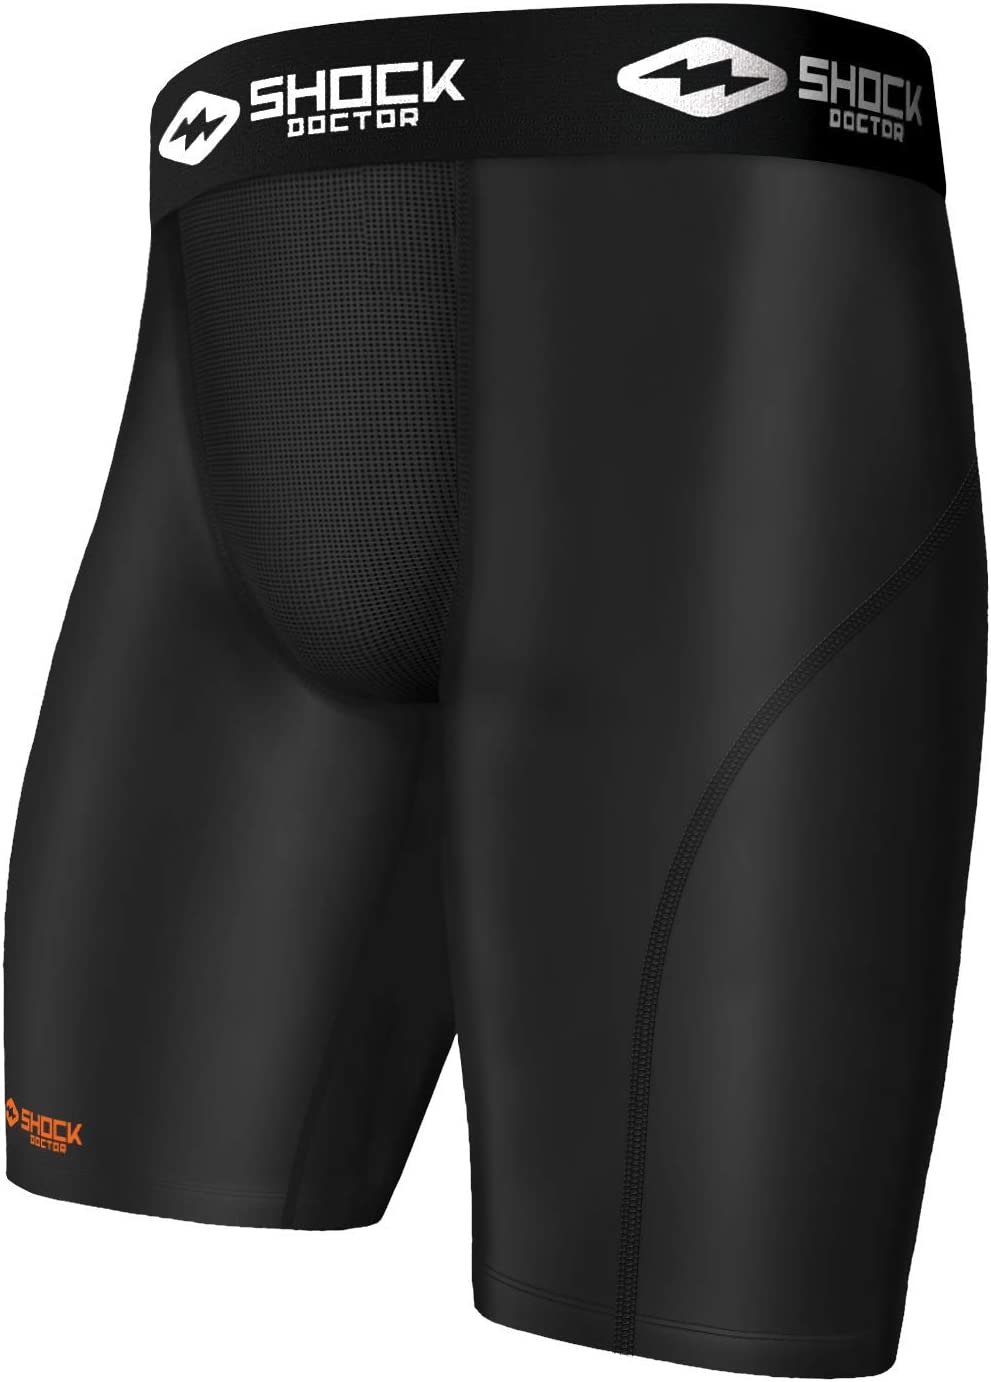 Shock Doctor Compression Shorts with Cup Pocket. Athletic Supporter Underwear with Pocket (Cup NOT included) Youth & Adult